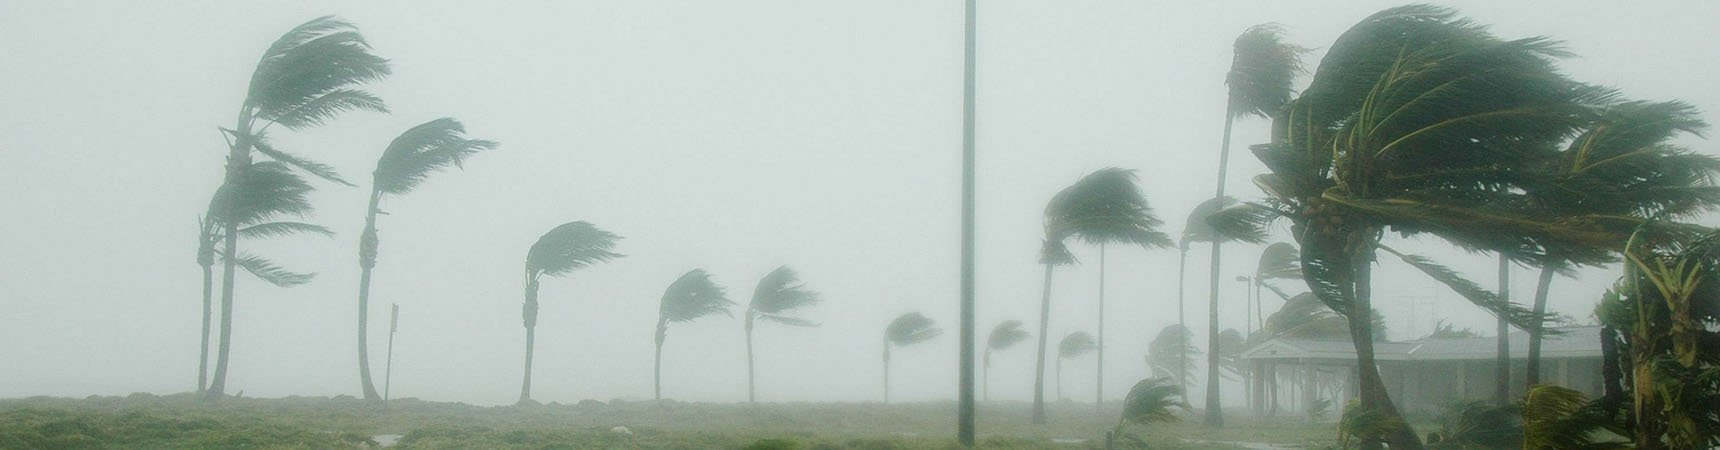 Palm Trees blowing from a hurricane